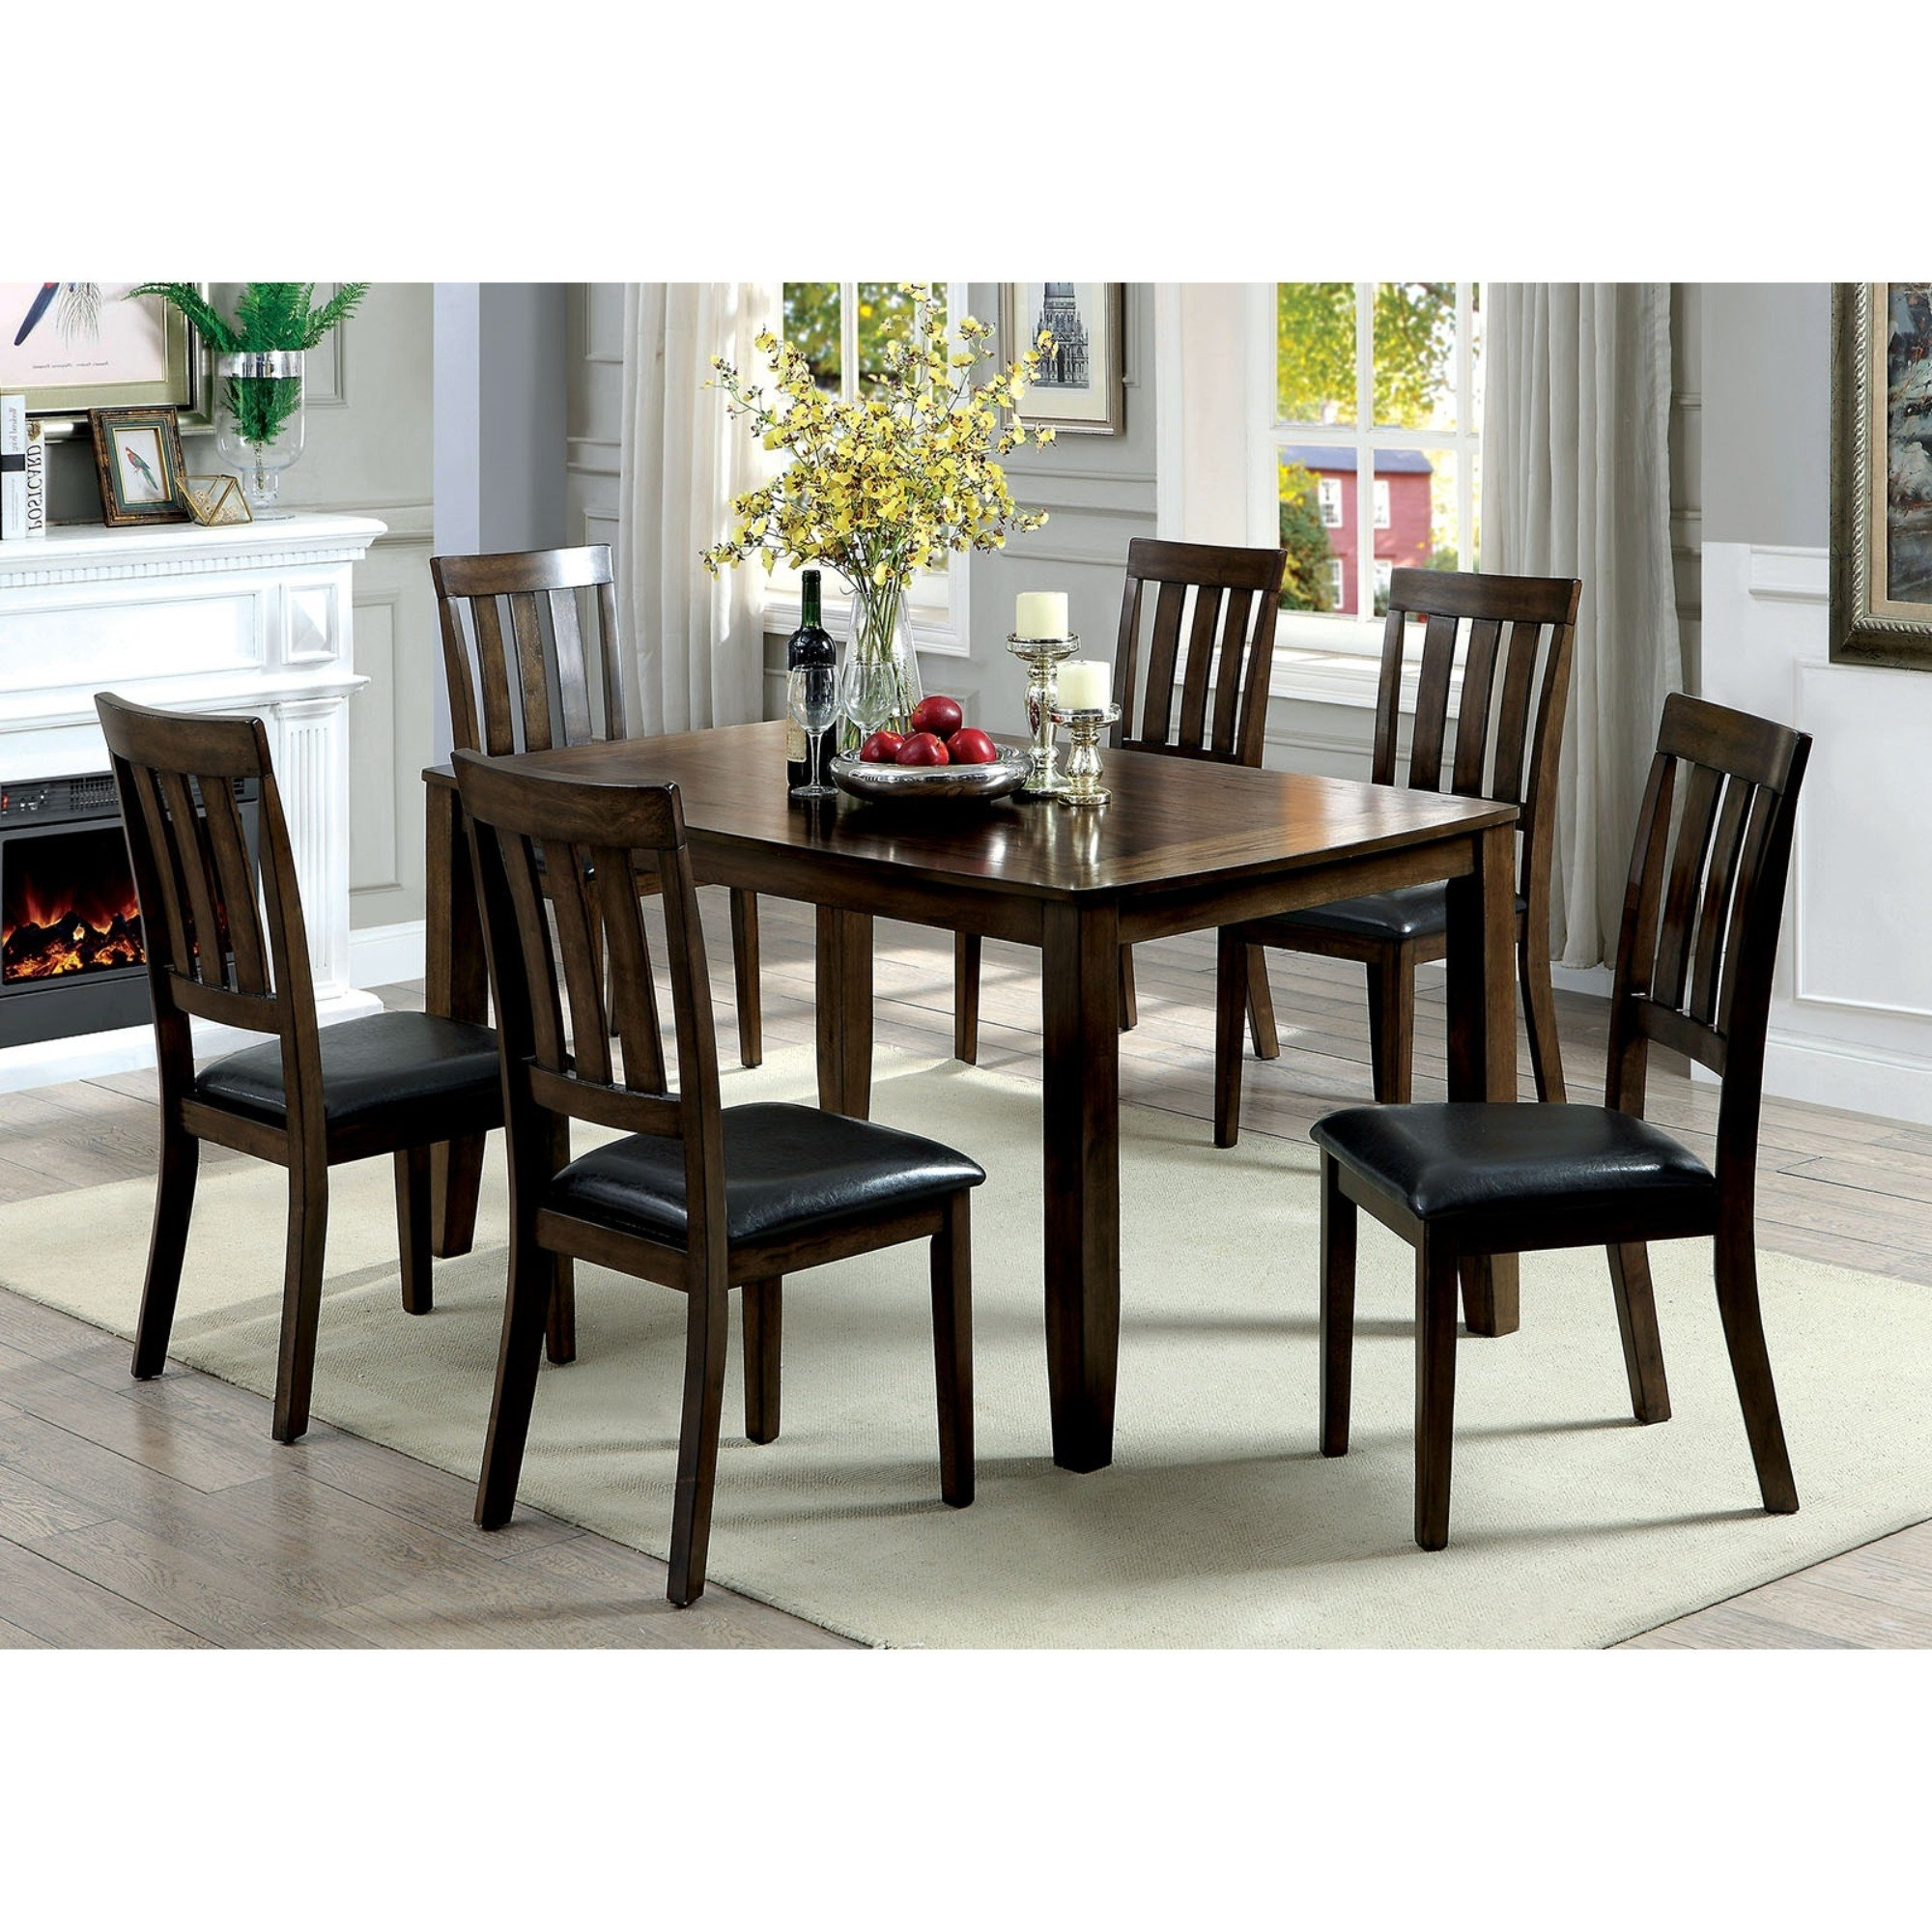 Recent Candice Ii 6 Piece Extension Rectangle Dining Sets with Millwood Pines Devon Wooden 7 Piece Counter Height Dining Table Set